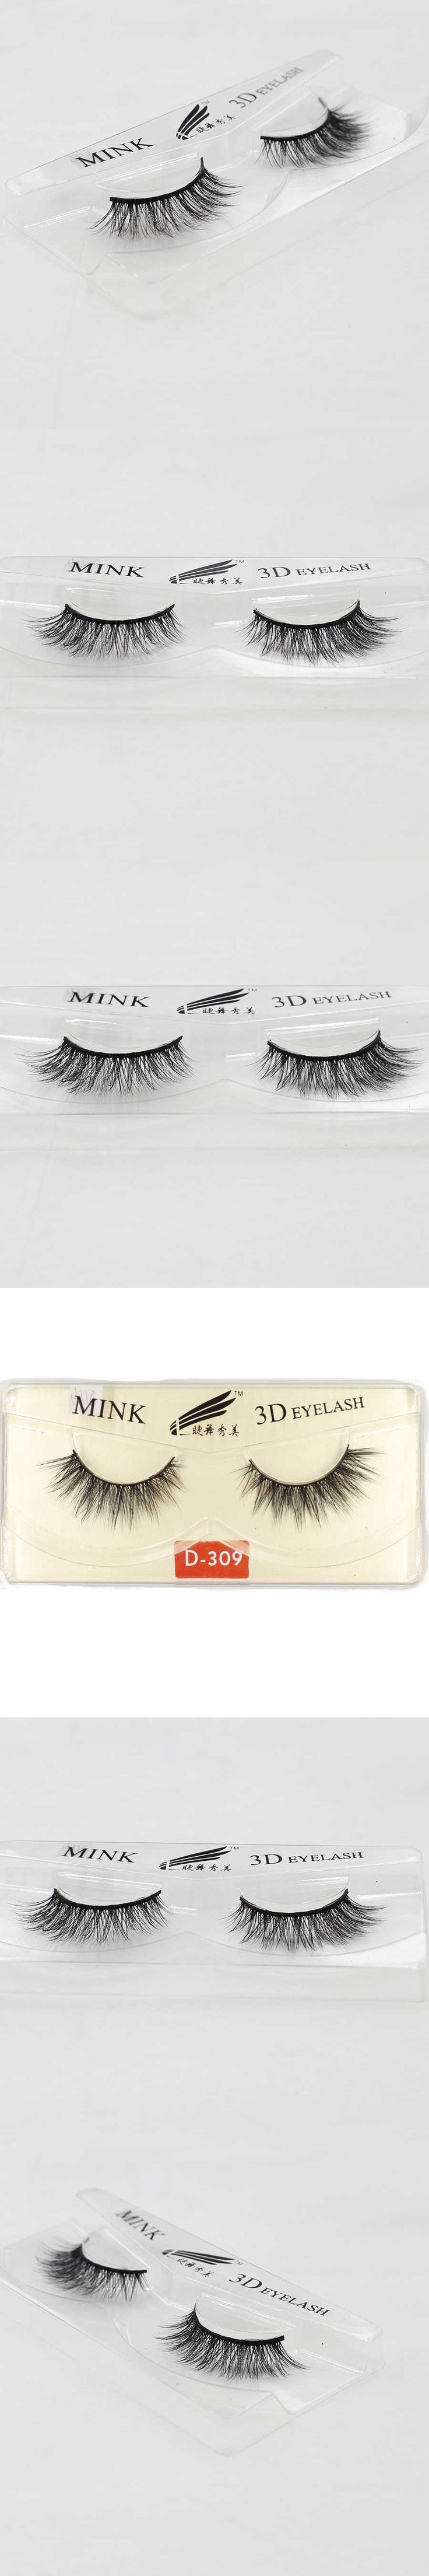 5 Pairs Tapered 3D Mink Eyelashes Extension False Eye Lashes +Box Cilios Posticos Naturais Faux Cils Wimpern Nep Wimpers D309-S5